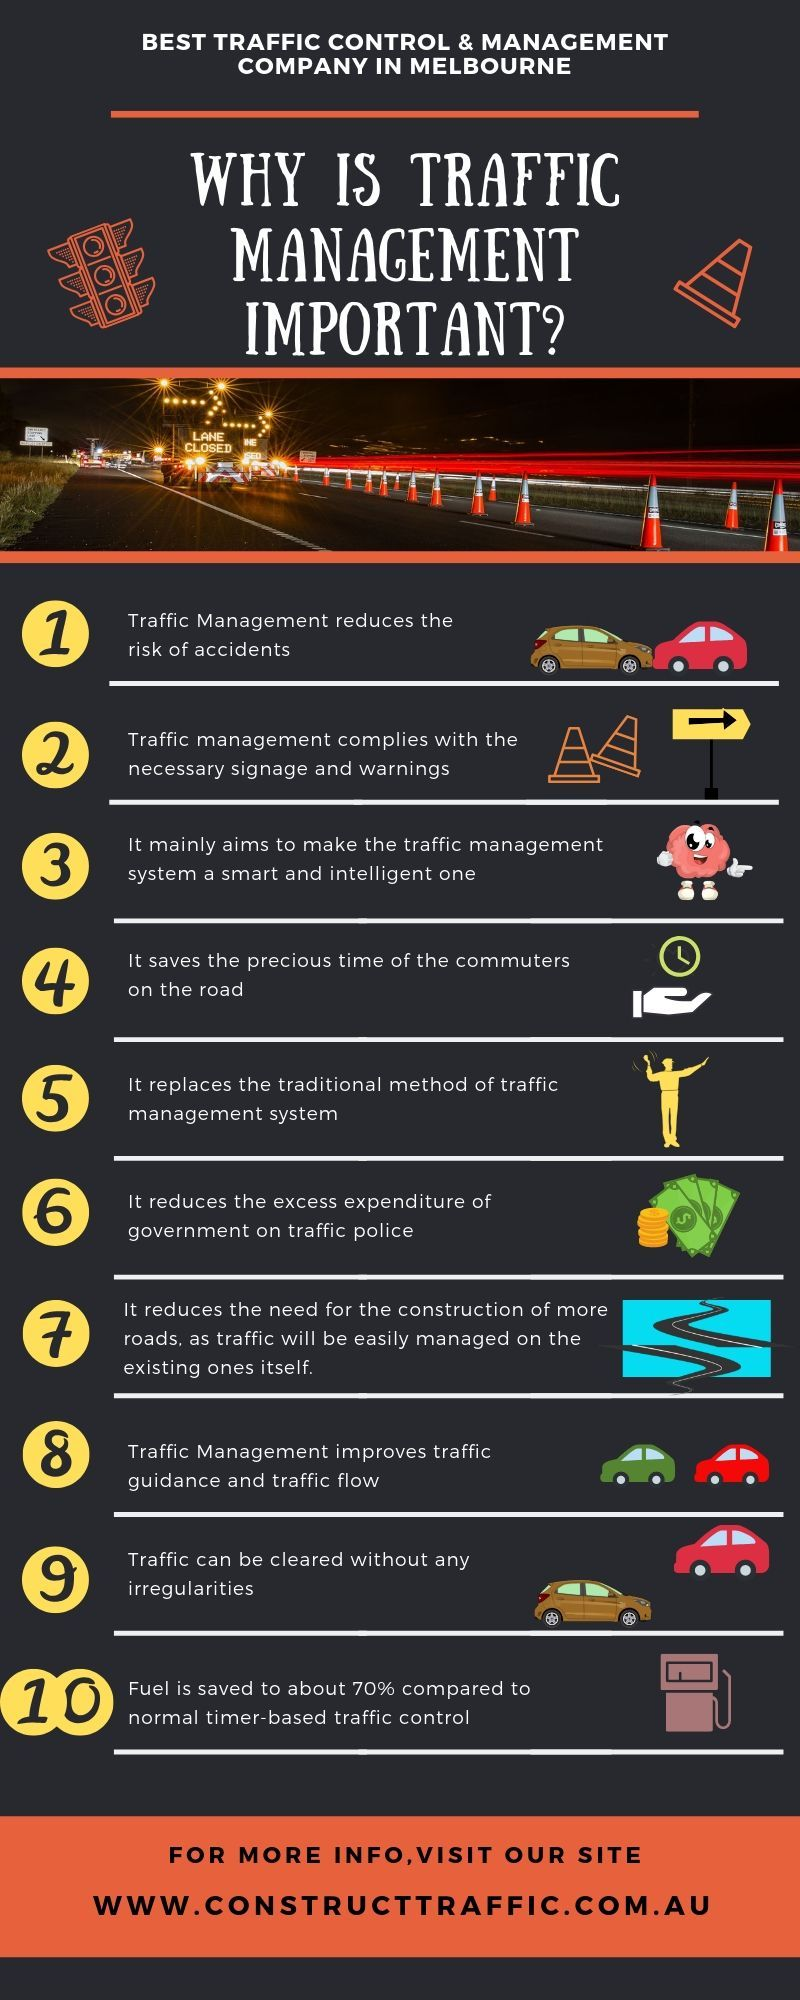 Find out why trafficcontrol and trafficmanagement is